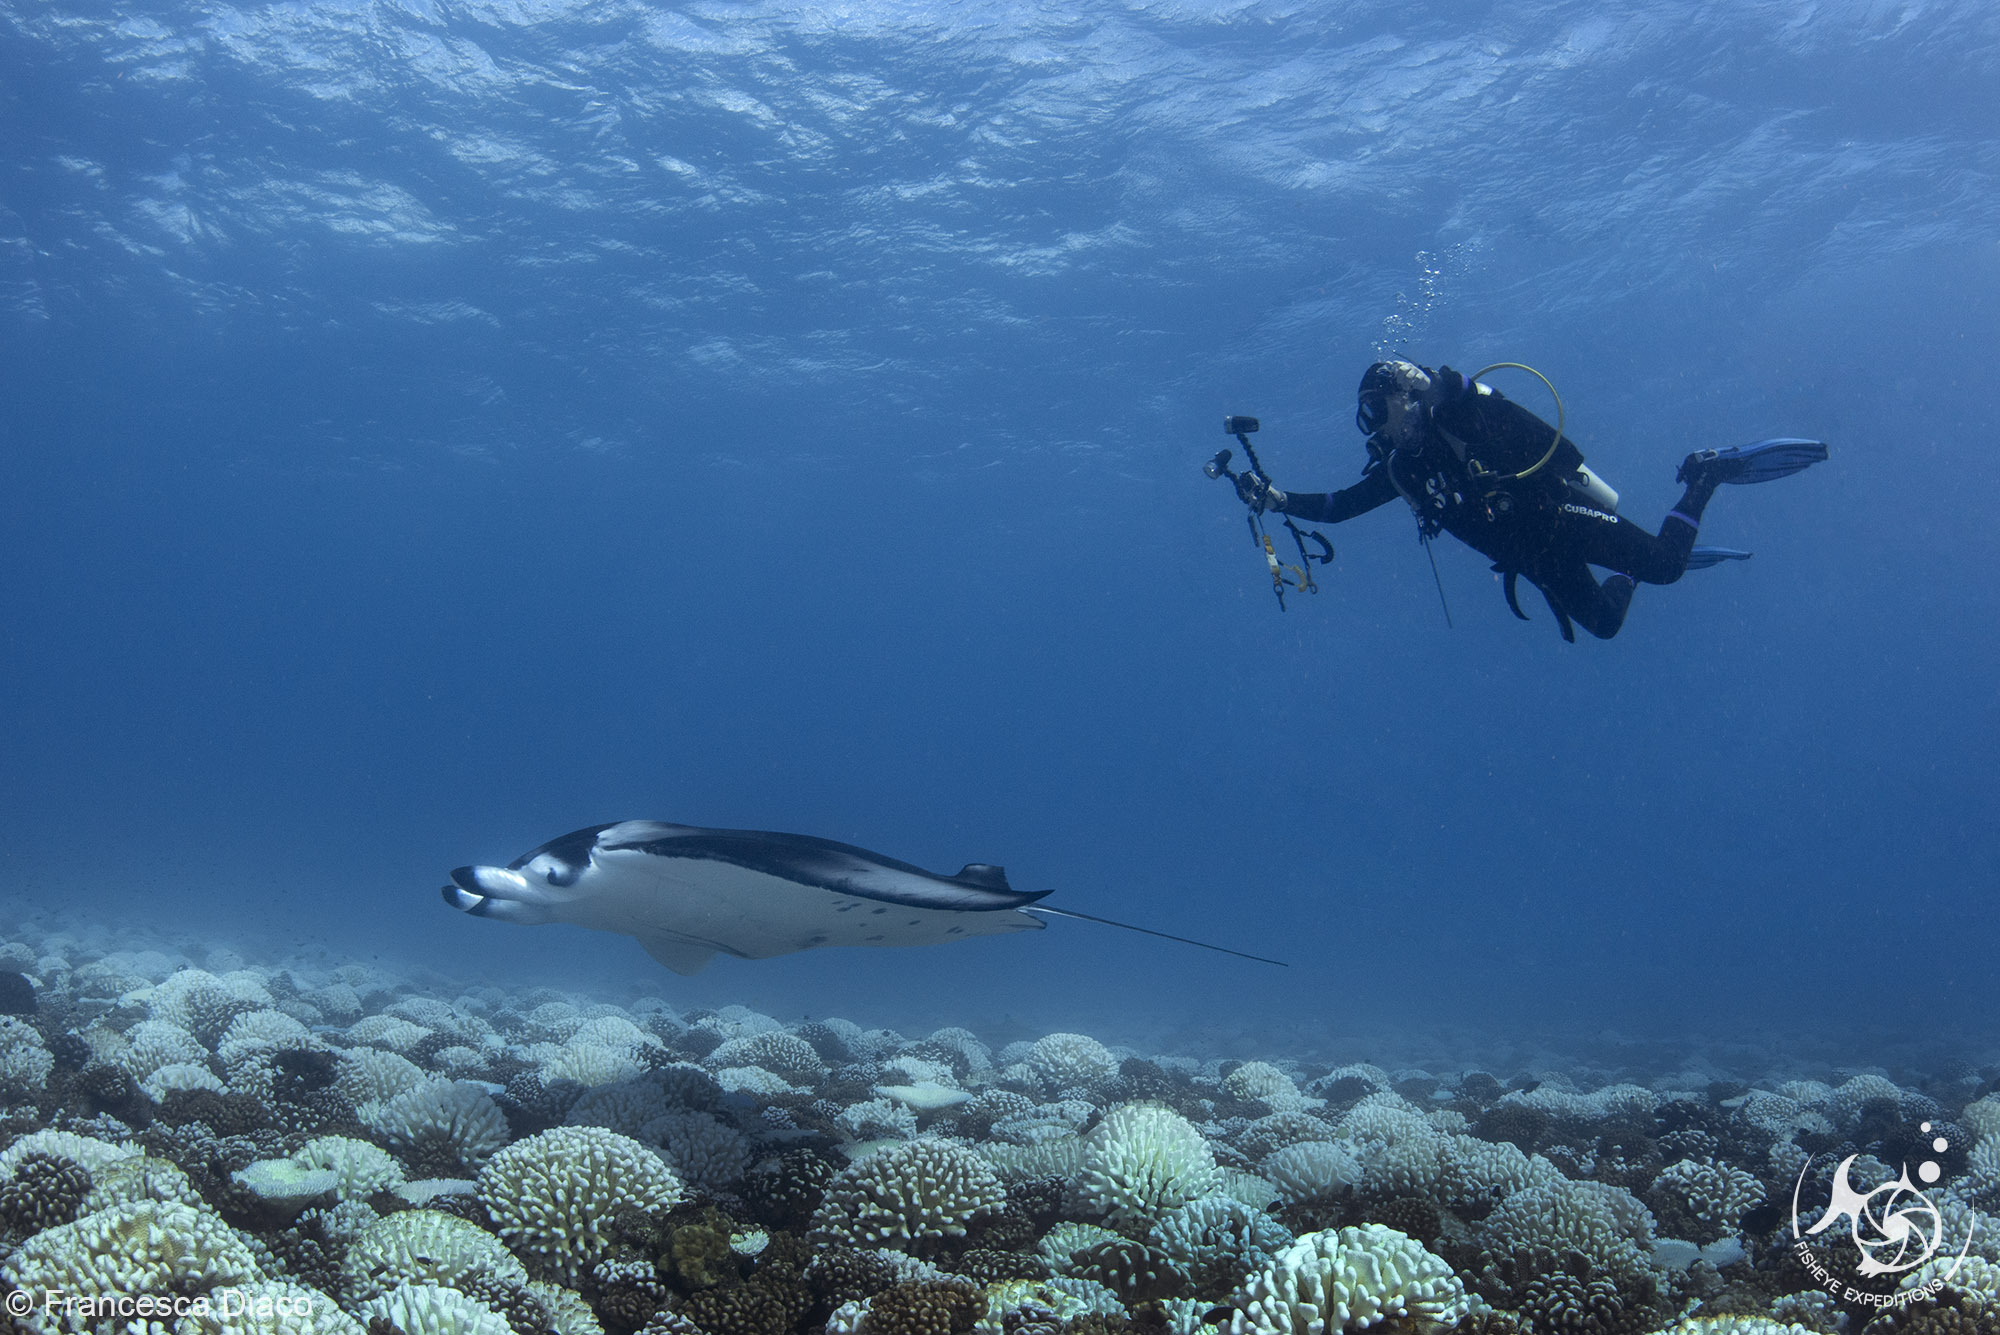 Di Faulkner having an amazing moment (which resulted in a fabulous video) with this gorgeous manta ray.